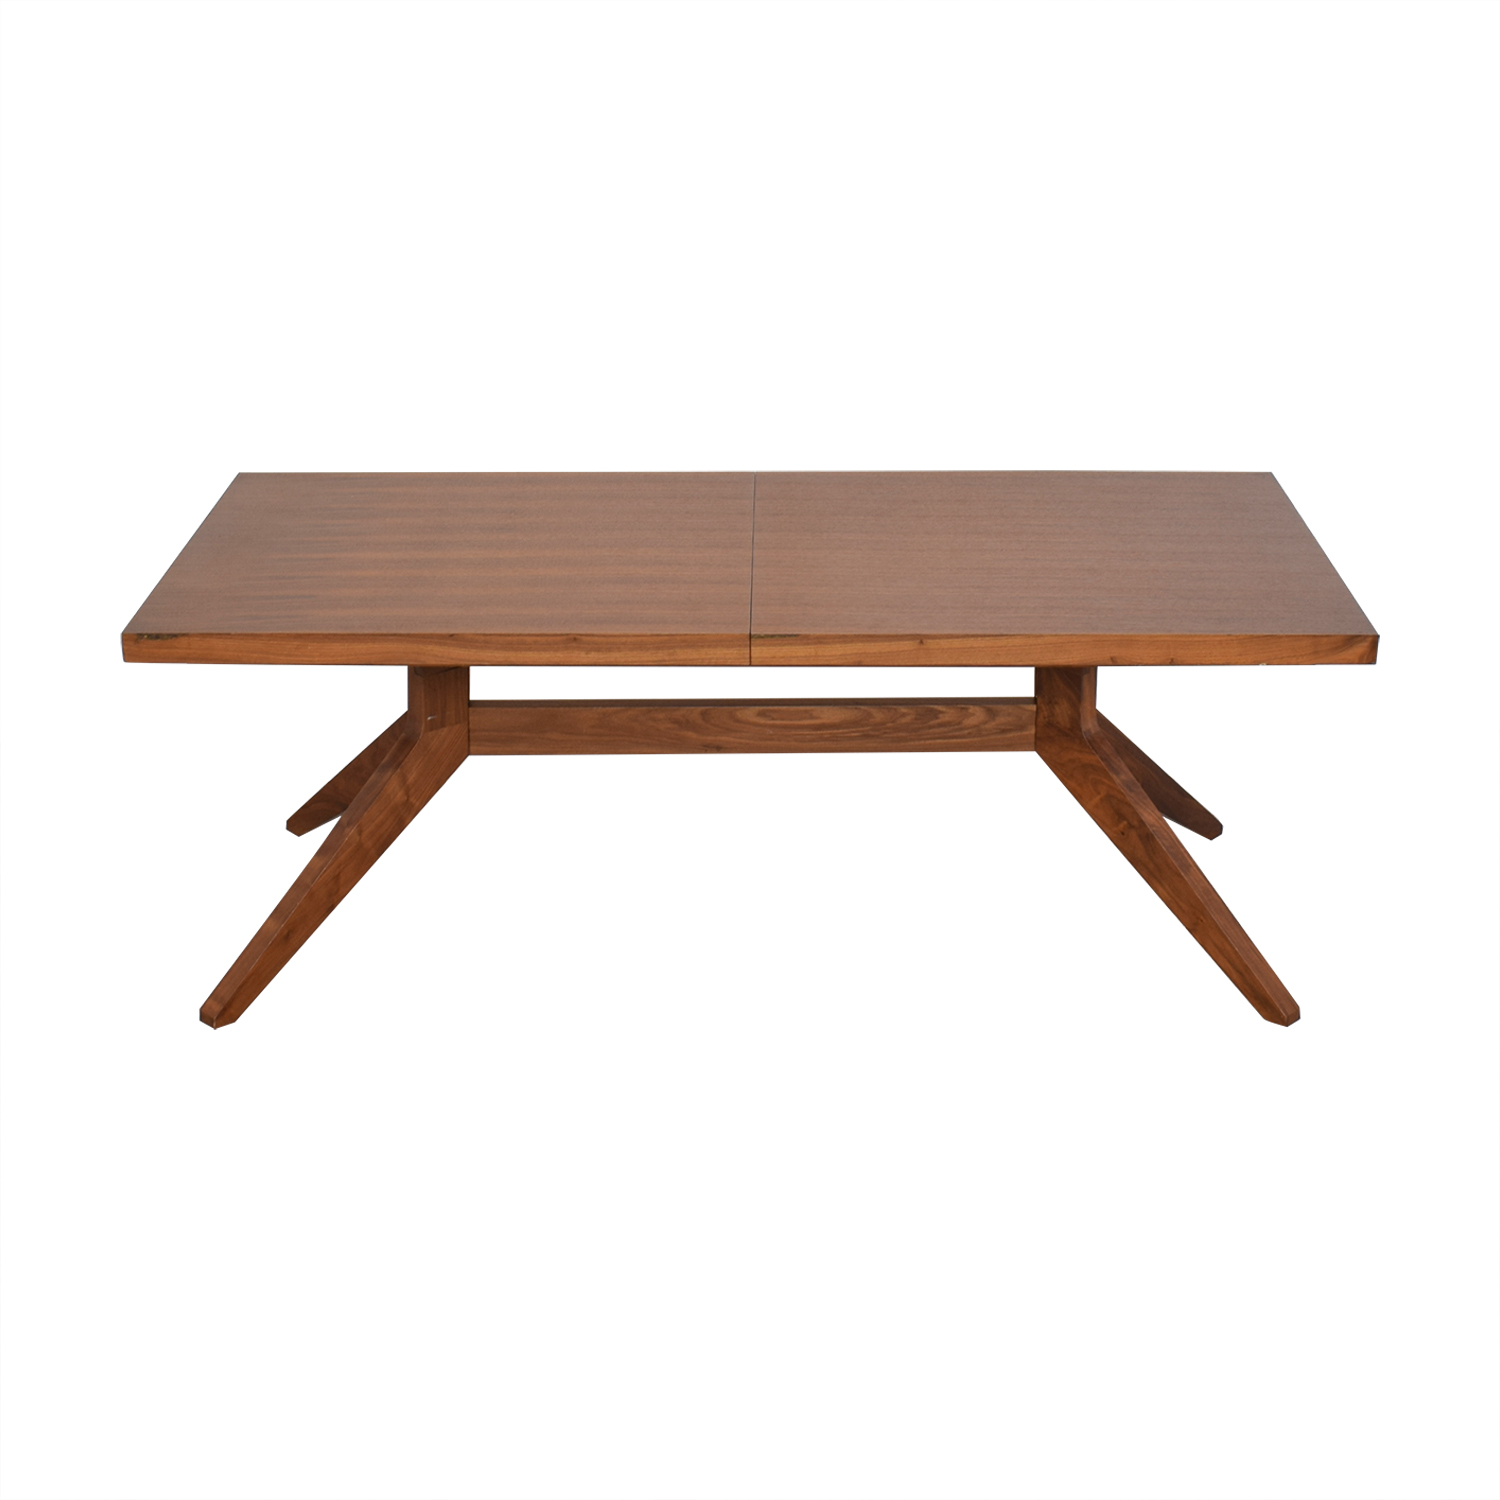 Matthew Hilton for Case Cross Extension Dining Table sale